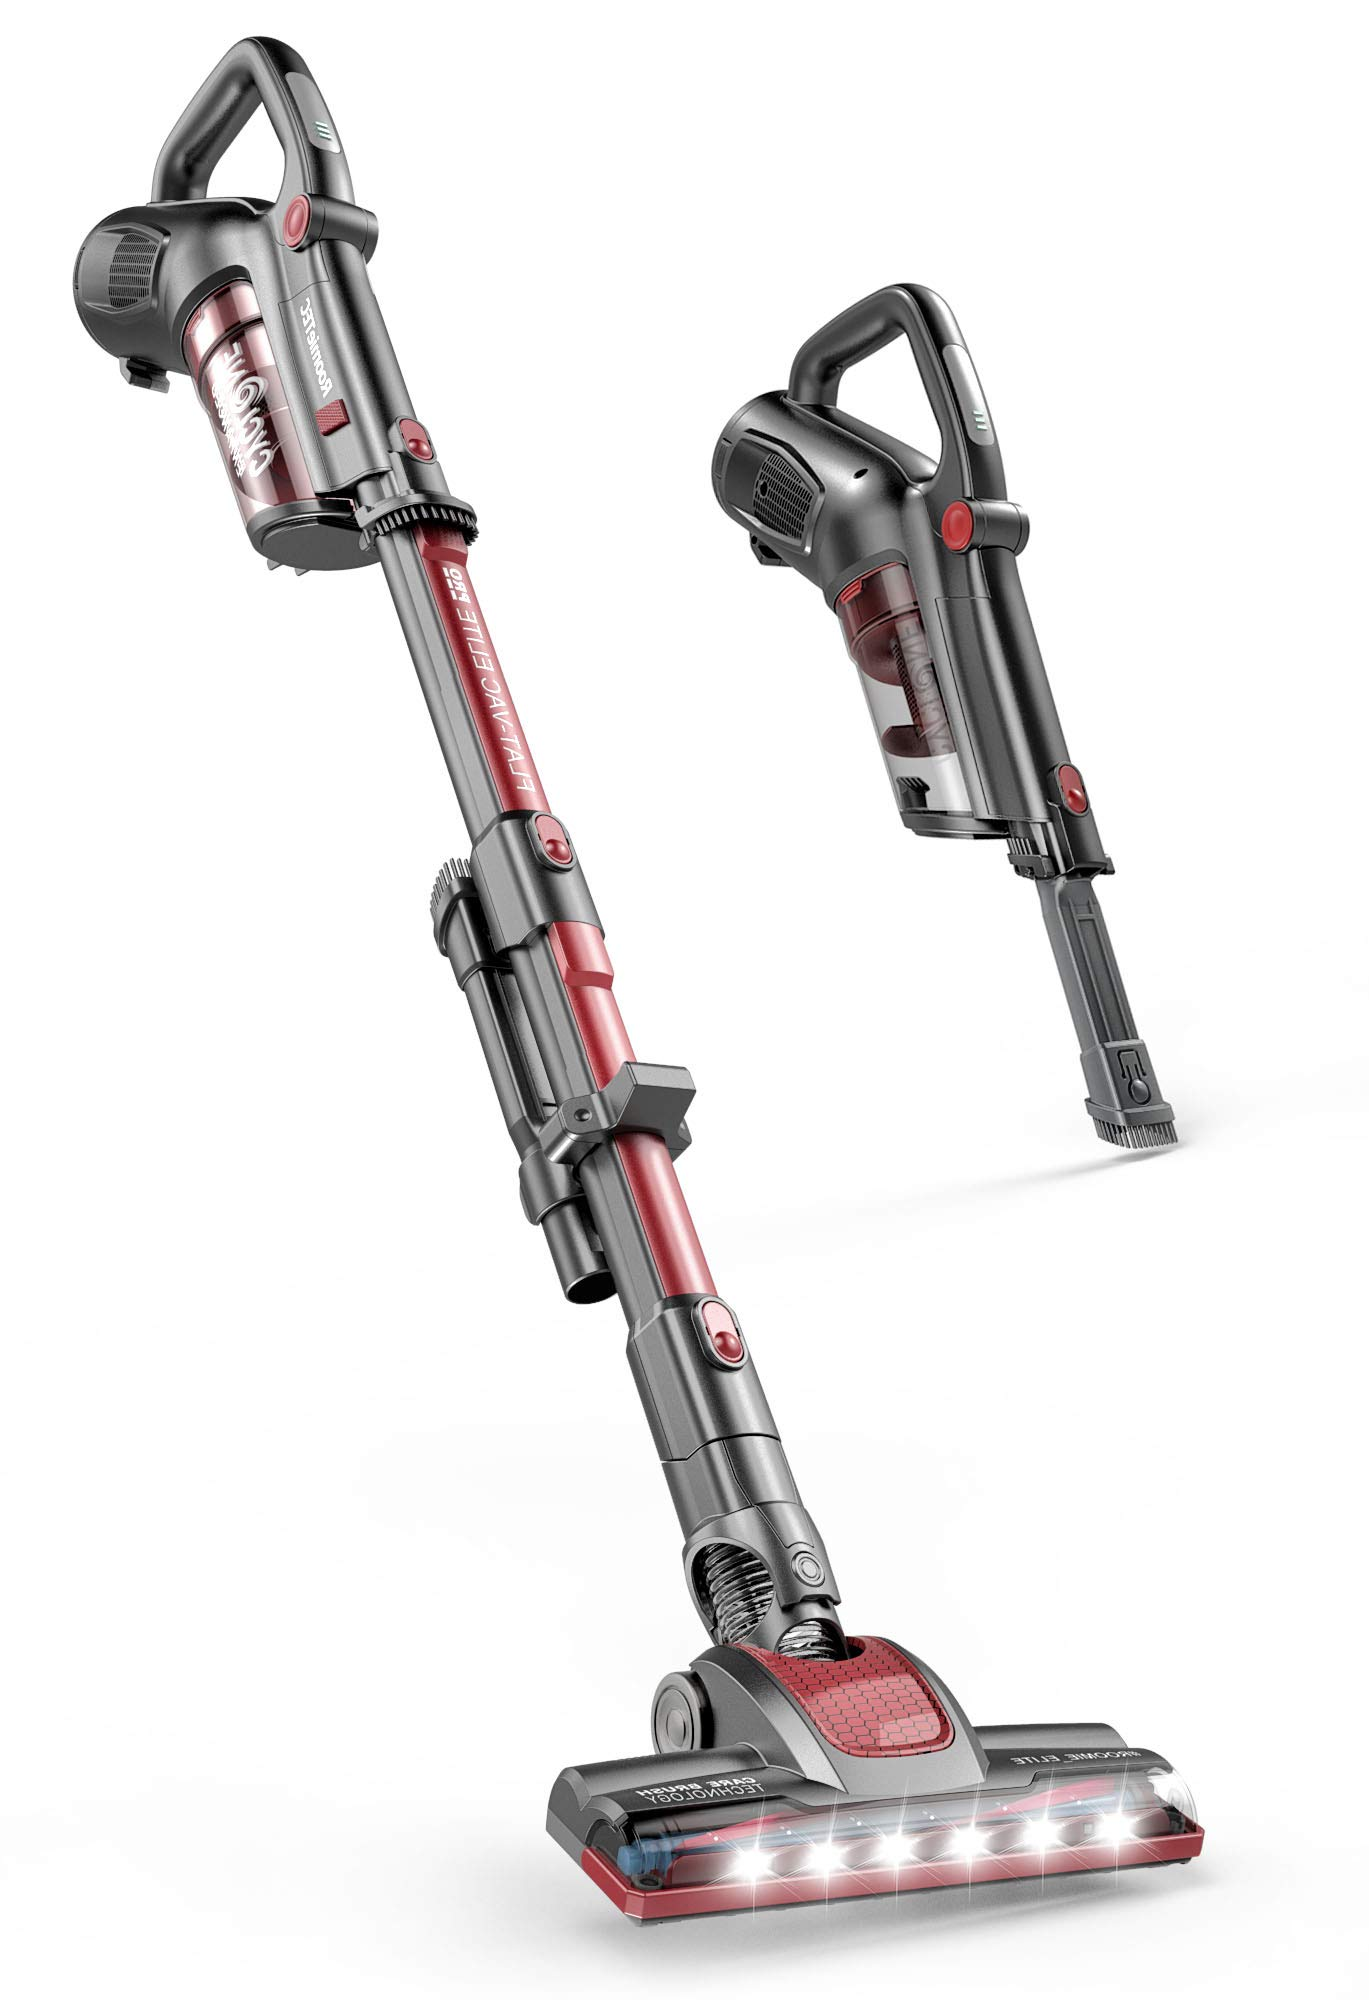 ROOMIE TEC Cordless Stick Vacuum Cleaner with Stand-Alone Battery, HEPA Filter for Pet Hair, 2 in 1 Handheld Dust Buster with Powerful Suction, Low Reach Design & LED Headlights by Roomie Tec